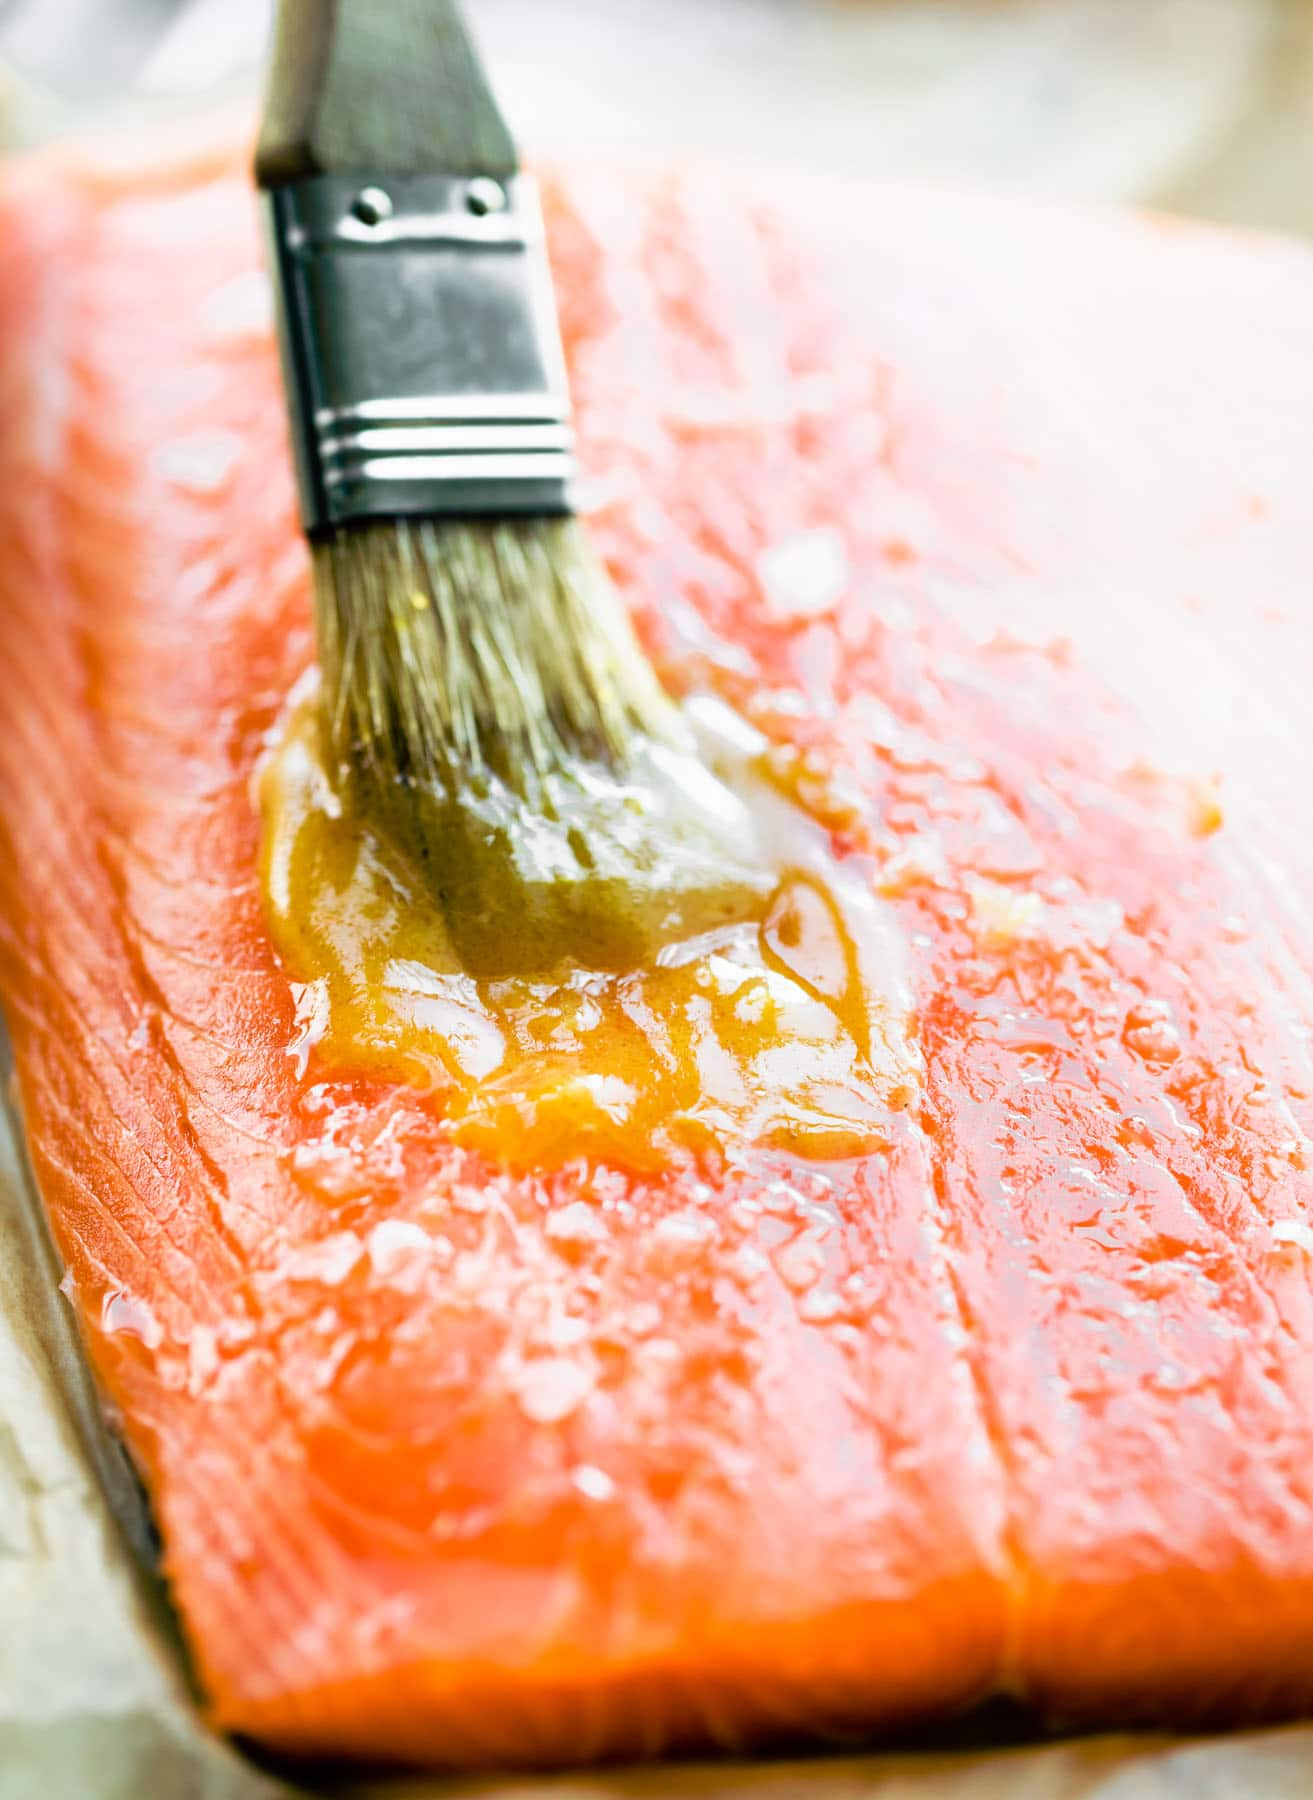 brushing melted butter onto piece of raw salmon